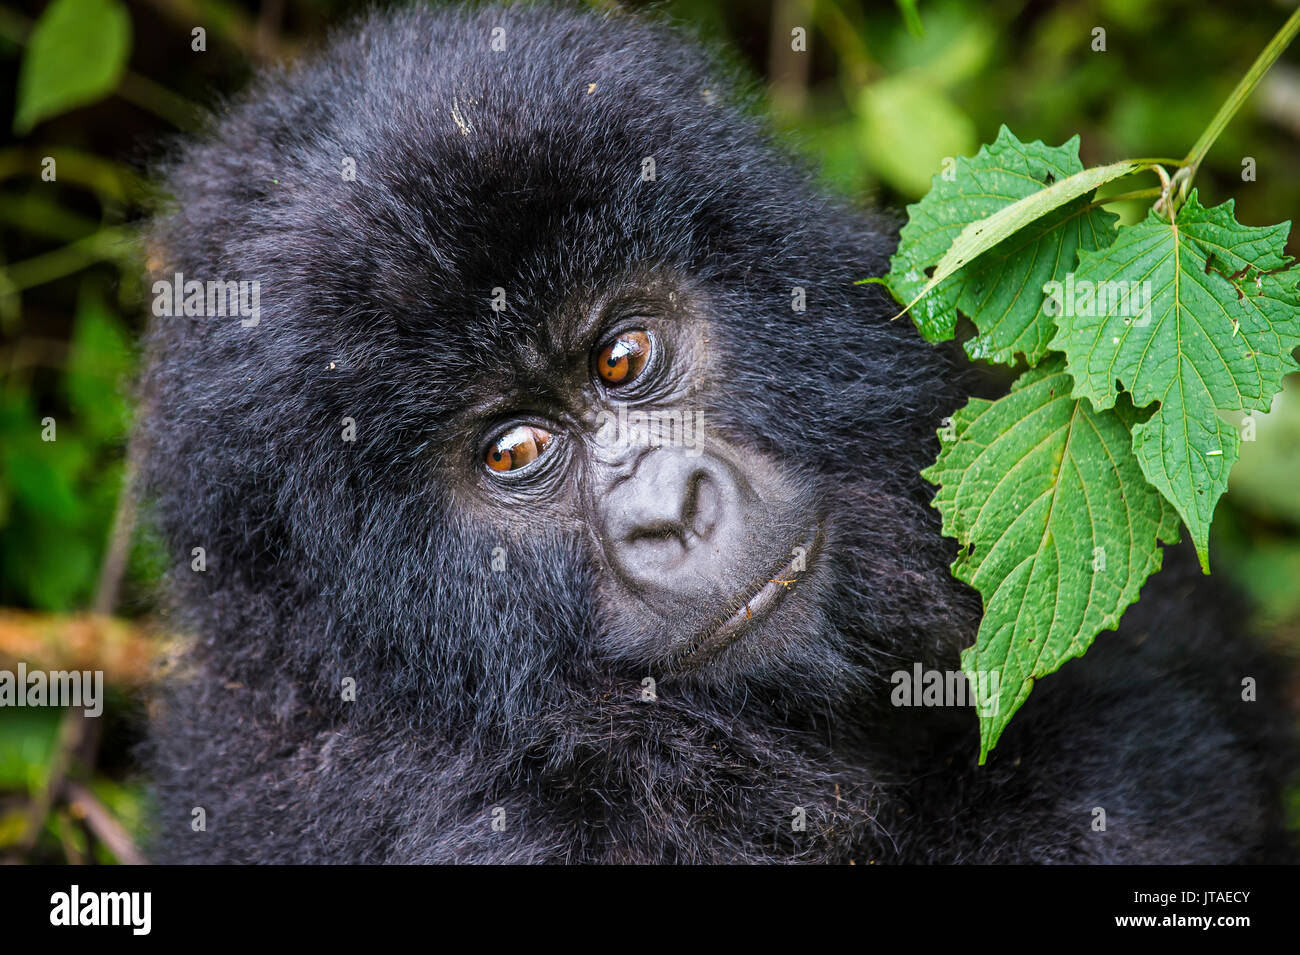 Young mountain gorilla (Gorilla beringei beringei) in the Virunga National Park, UNESCO, Democratic Republic of the Congo - Stock Image